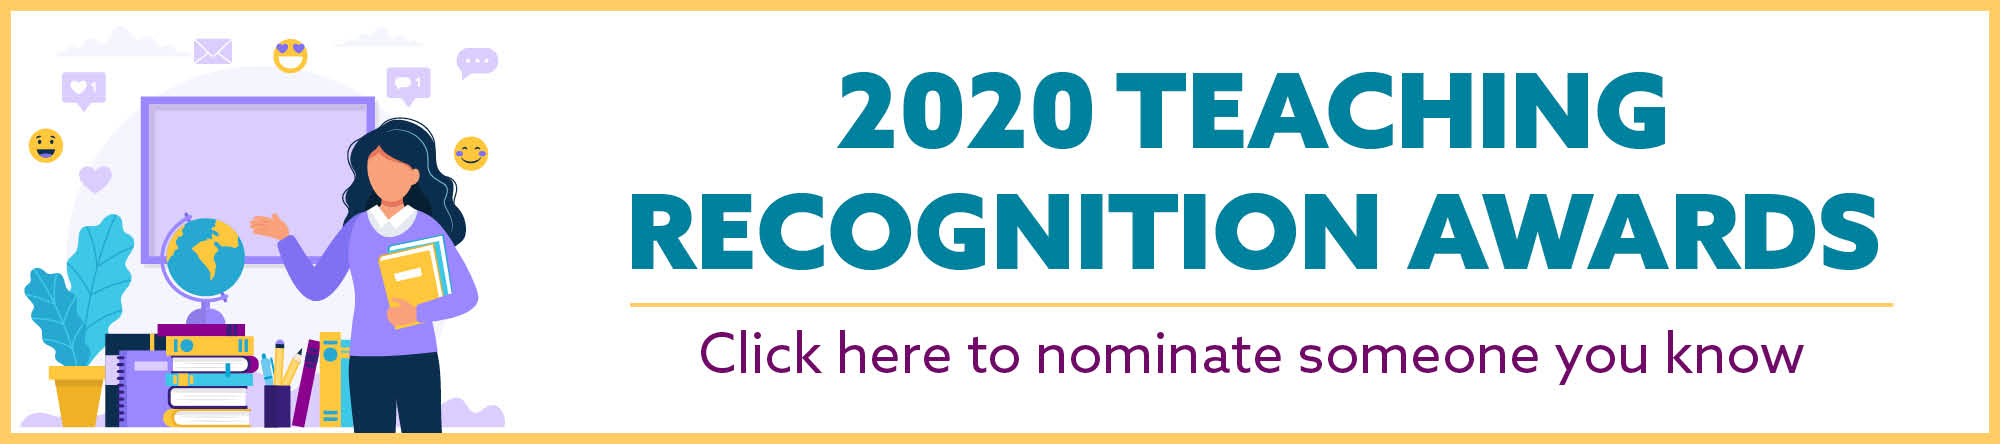 2020 Teaching Recognition Awards